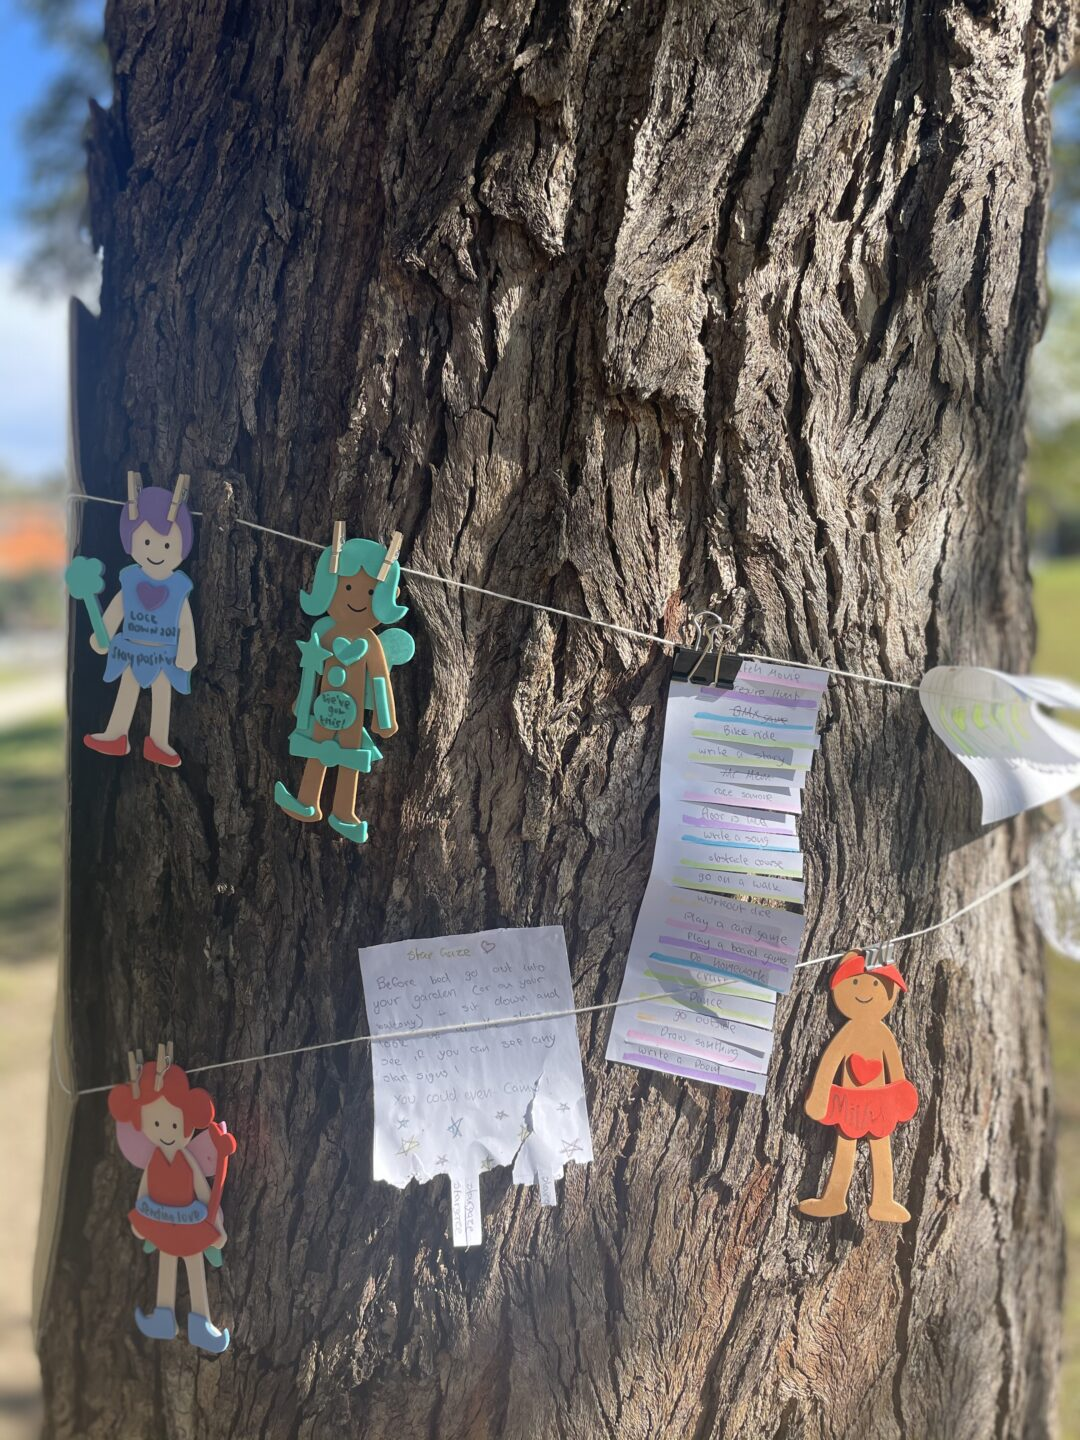 Arts and crafts tied with string around a tree truck.